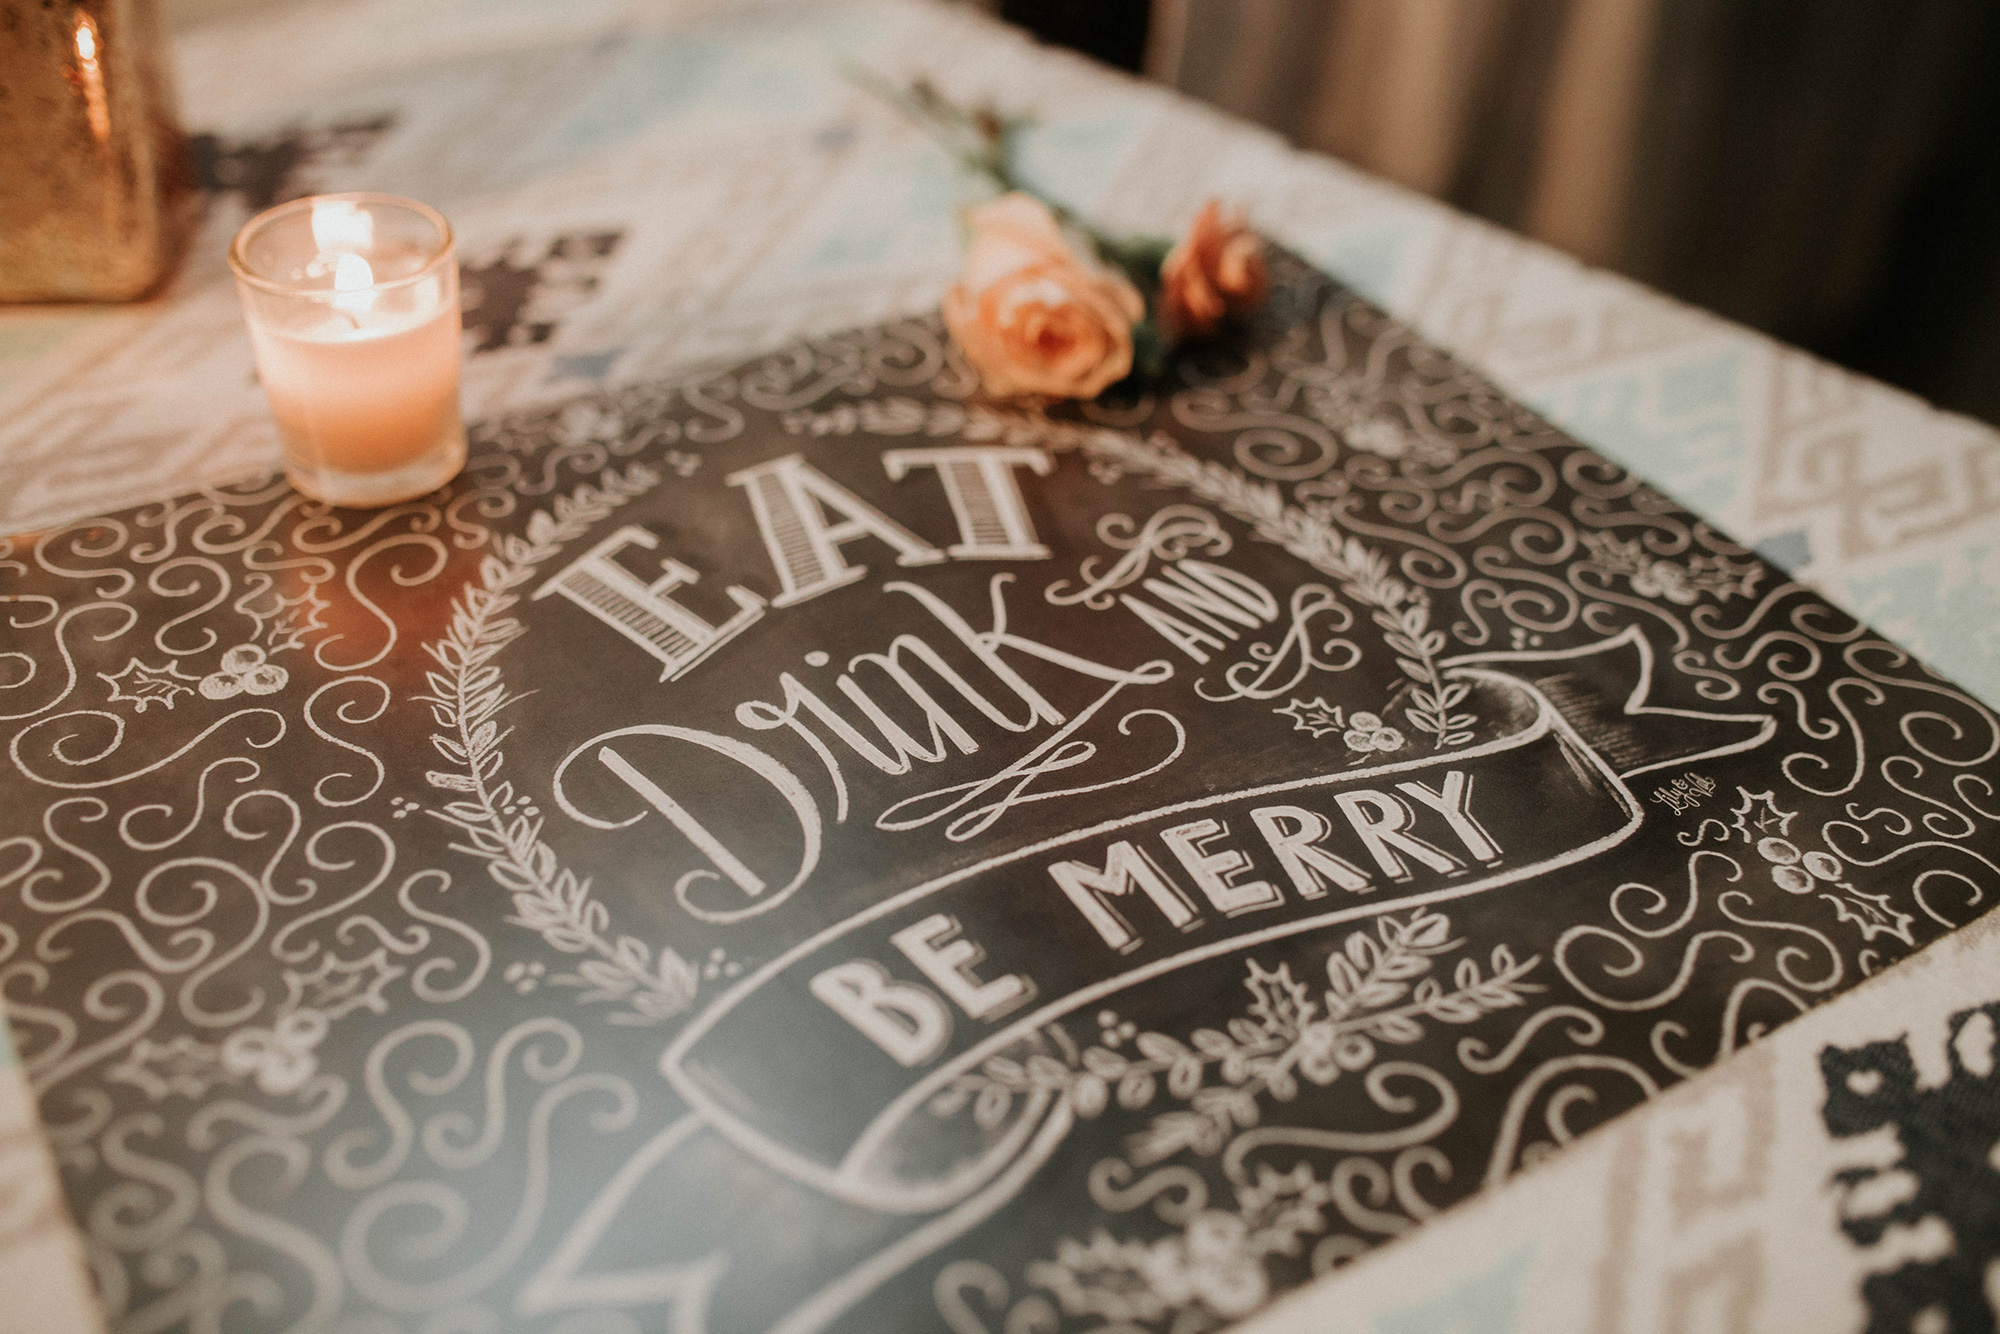 Eat Drink and Be Merry Chalk Art placemats at the Lily & Val Company Christmas Party